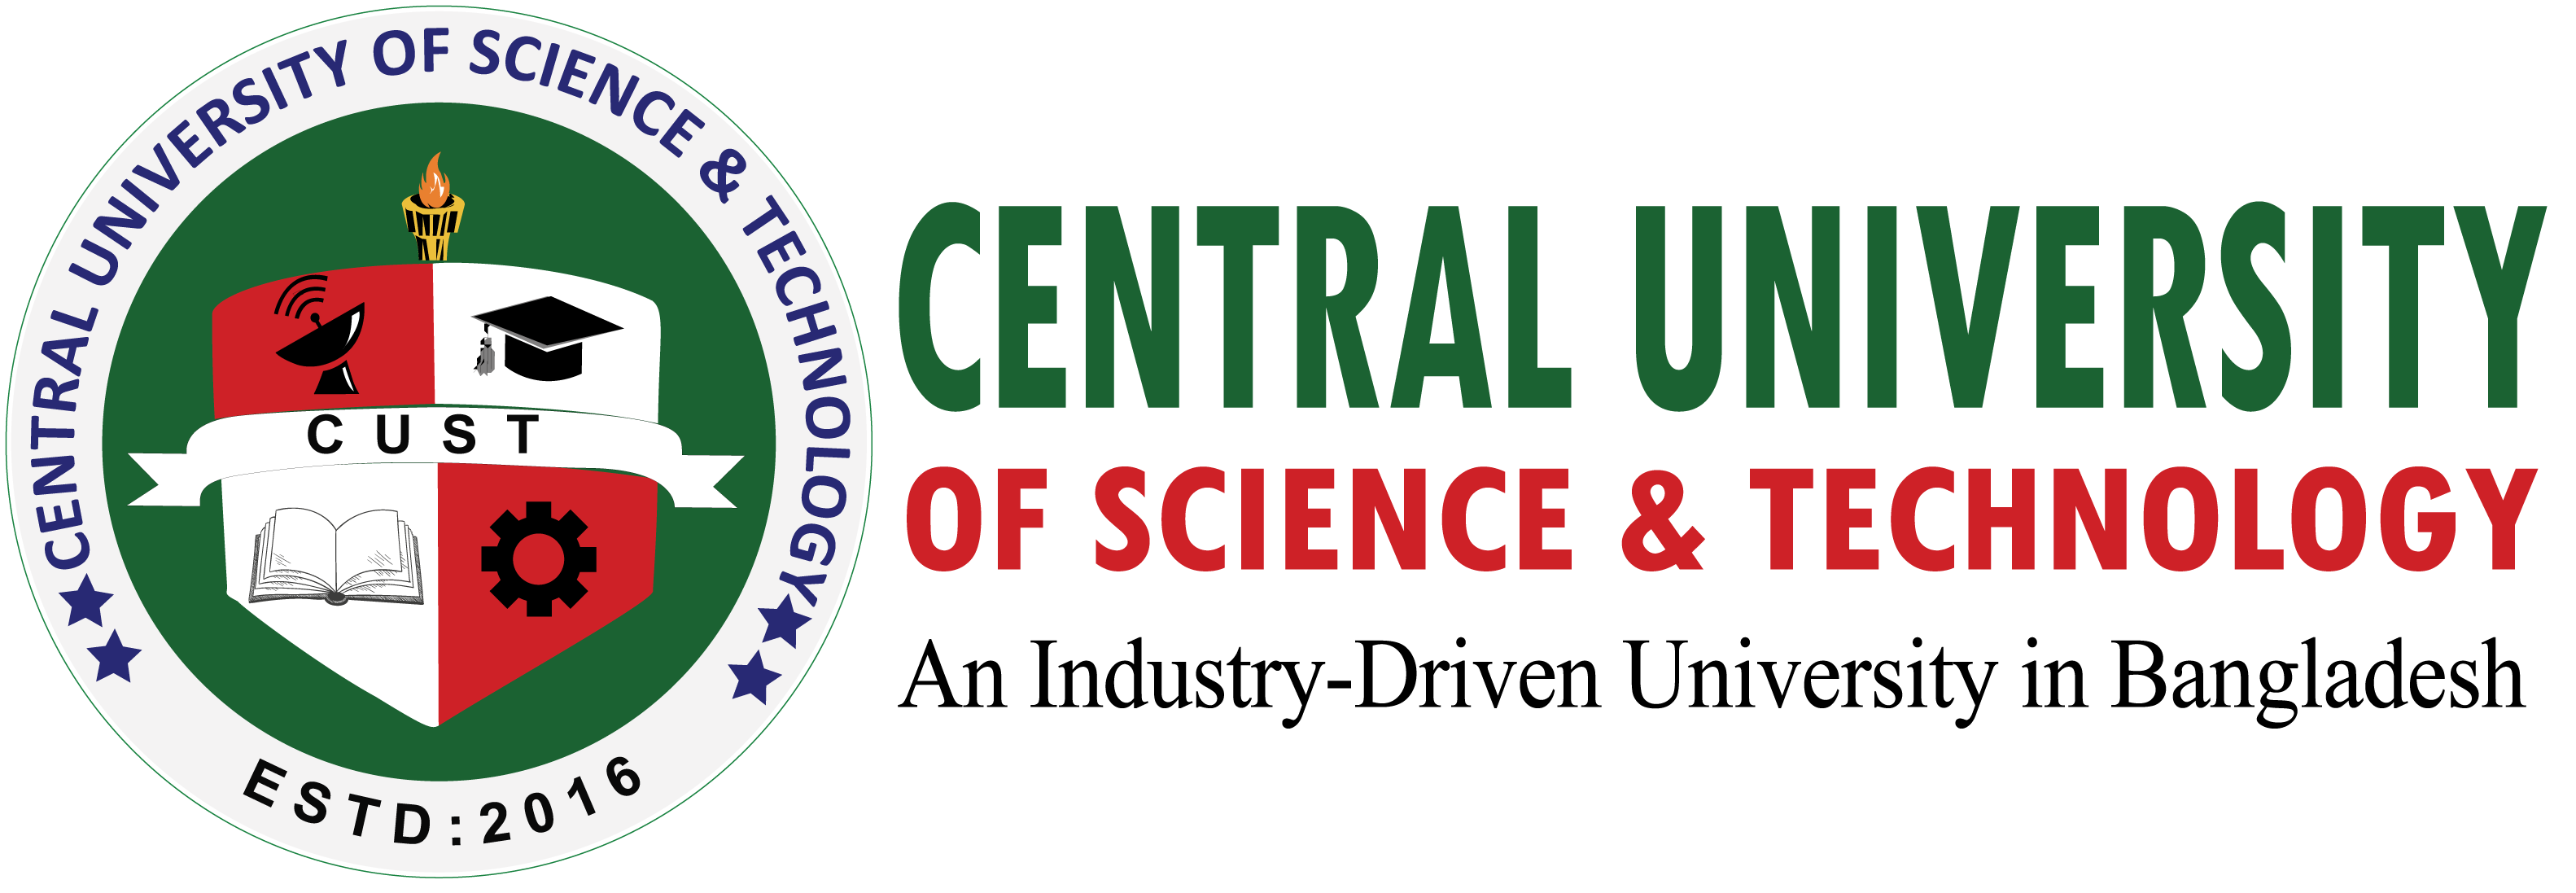 School of Business & Industrial Development - Central University of Science & Technology